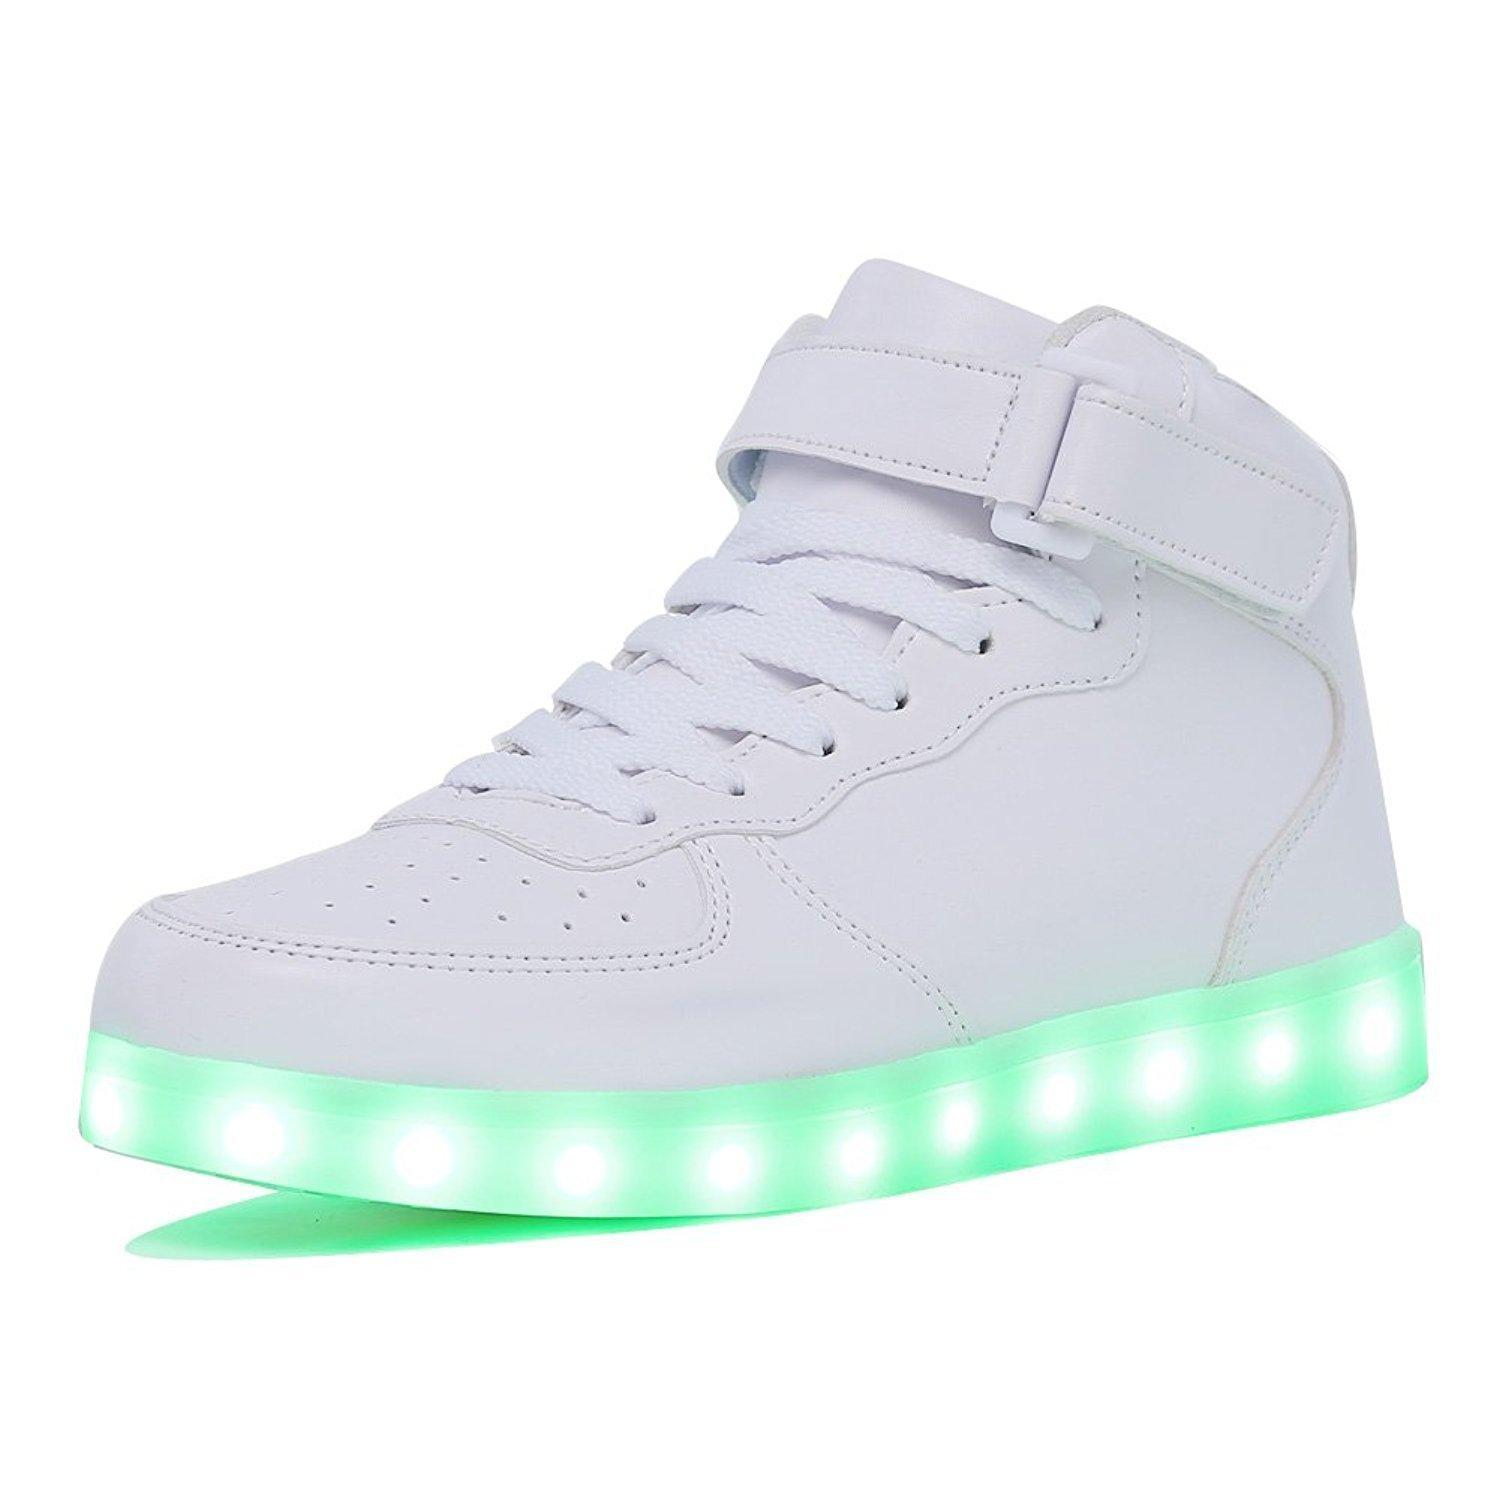 Kriativ Adult&kids Boy And Girl's High Top Led Light Up Shoes Glowing Sneakers Luminous Sole Sneakers For Women&men Y19051403